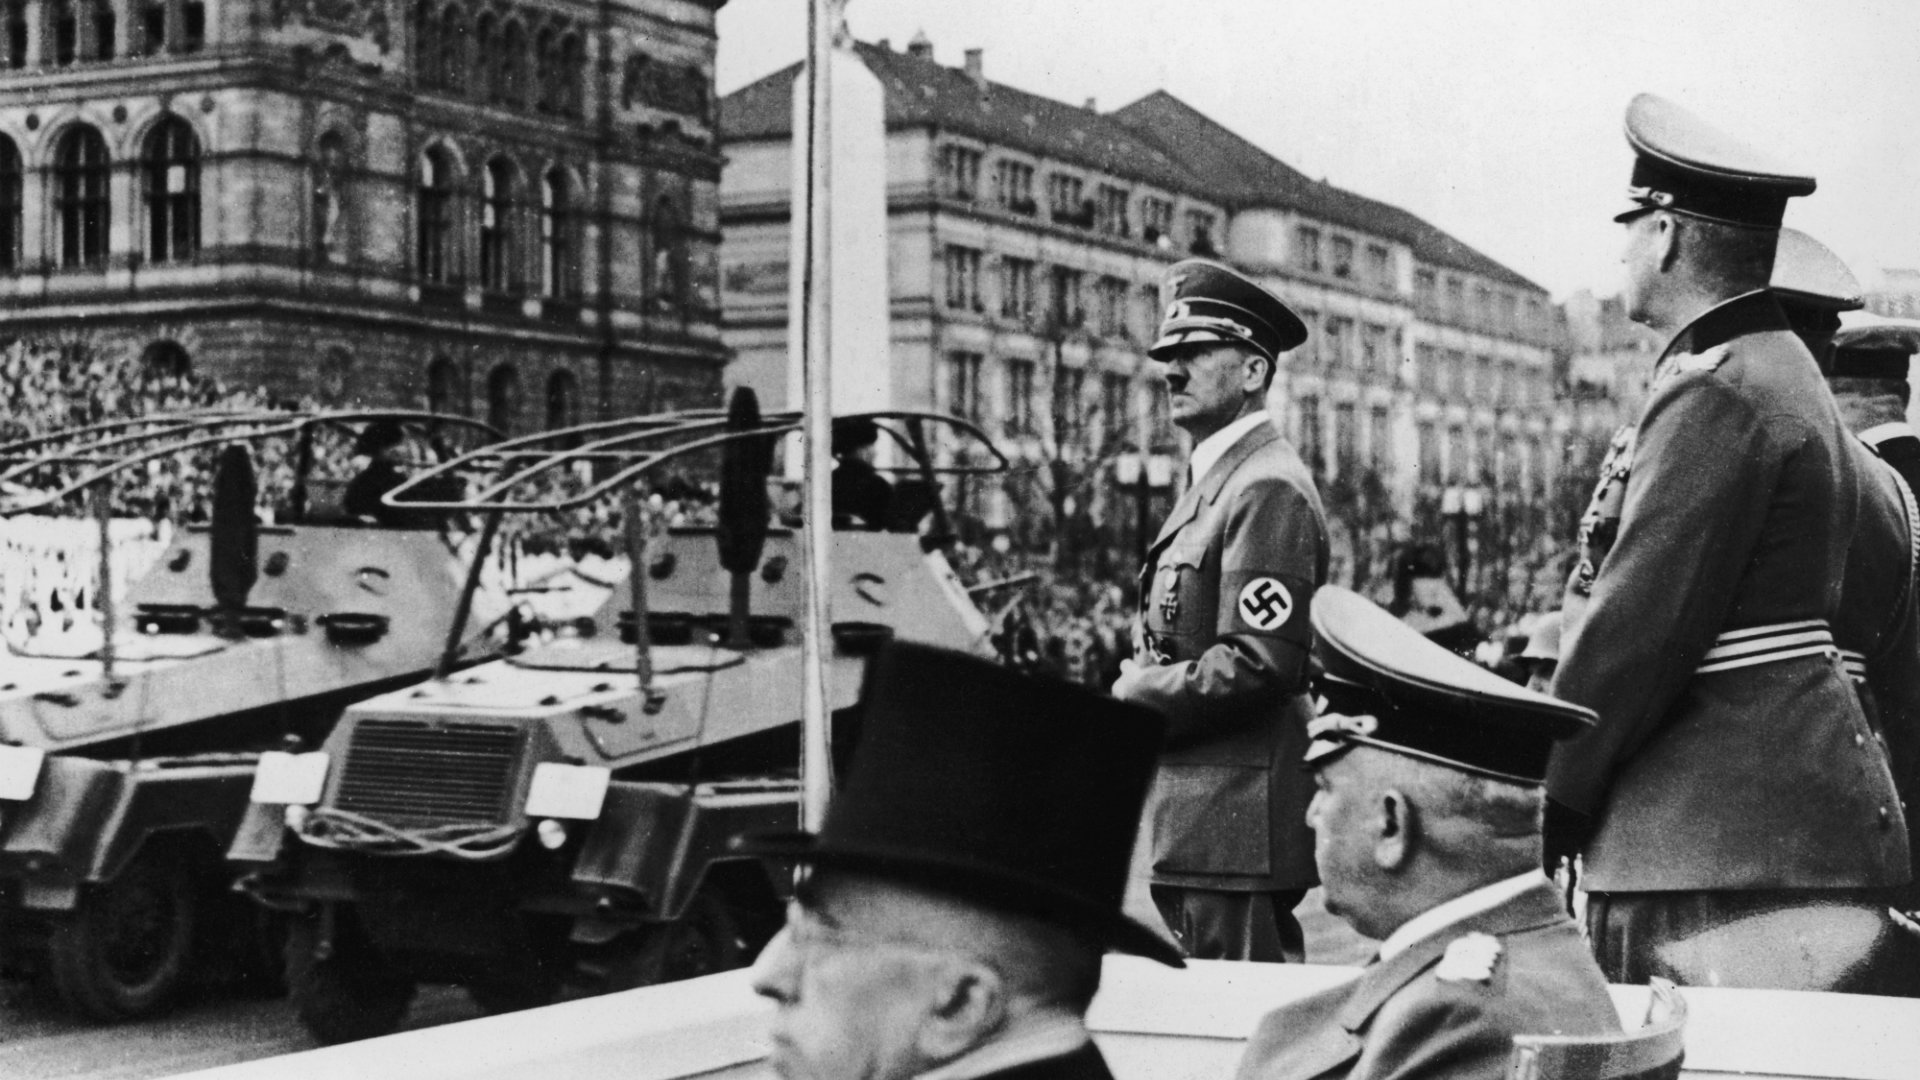 Adolf Hitler giving a speech